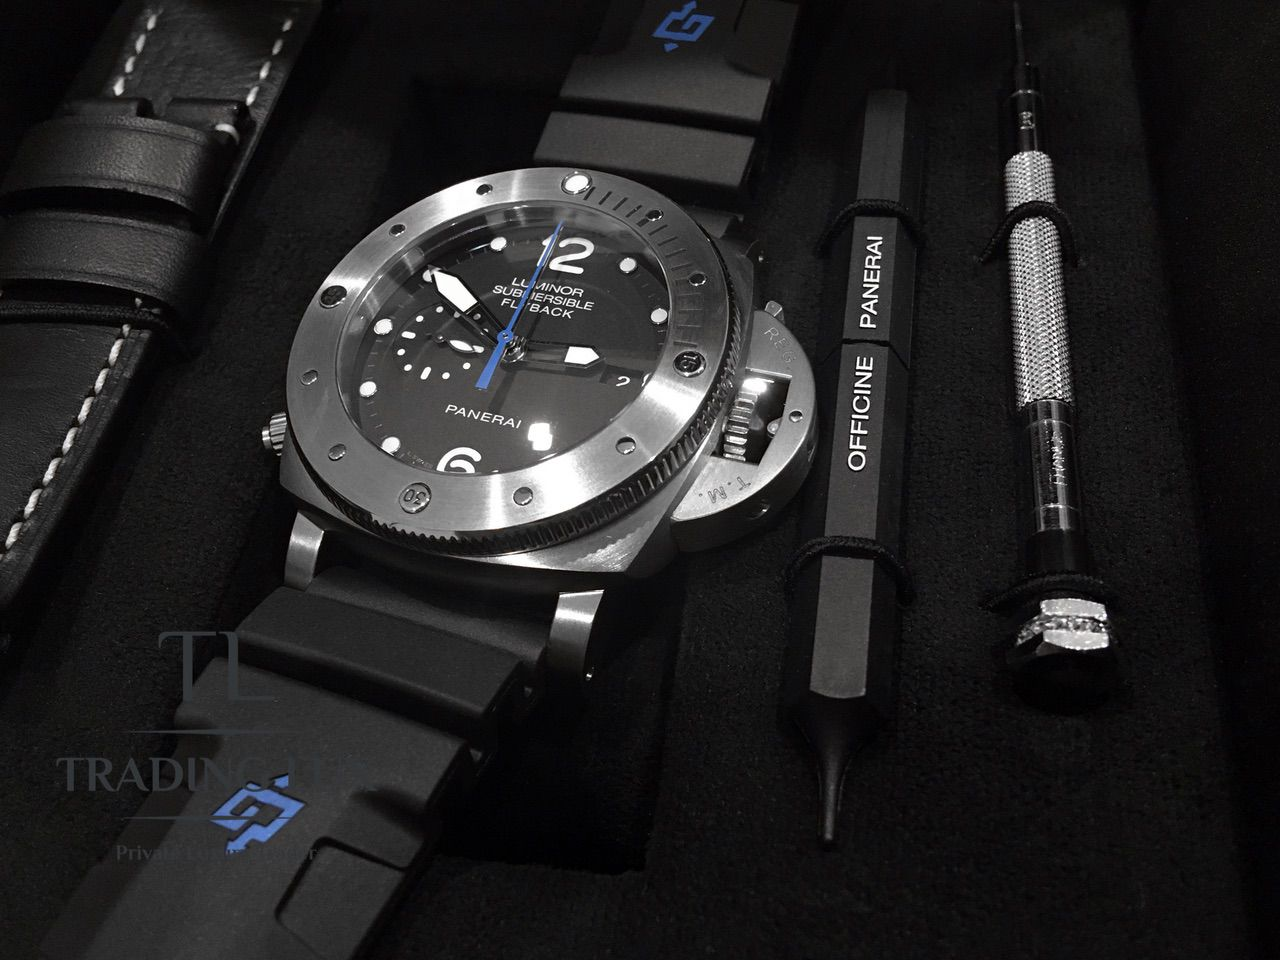 Panerai-Submersible-Chrono-PAM00614-12